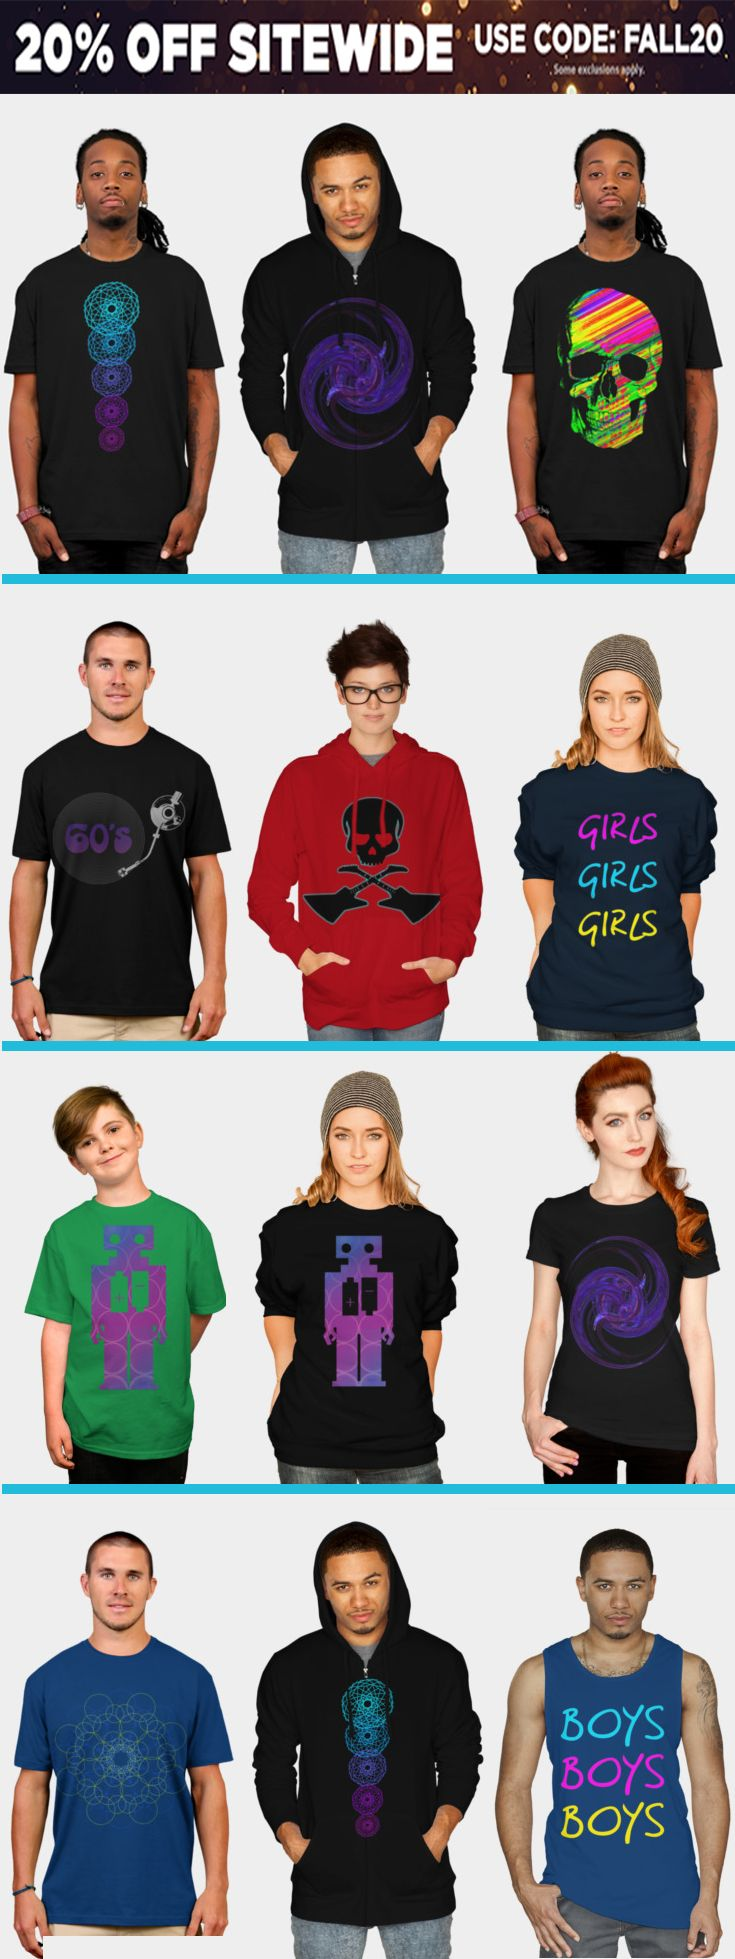 20% OFF Everything!!! Use code: FALL20. #tshirts #sales #discount #save #apparelsales #gifts #giftsforhim #giftsforher #freeshipping   #onlineshopping #onlinesellers #tshirts #mensfashion #fashion #style #womensfashion #hoodies #hoody #ziphoody #kidstshirt #clothing  #39 #family #skulltshirt #geometrictshirt #designbyhumans #scardesign #monstertshirt #robottshirt